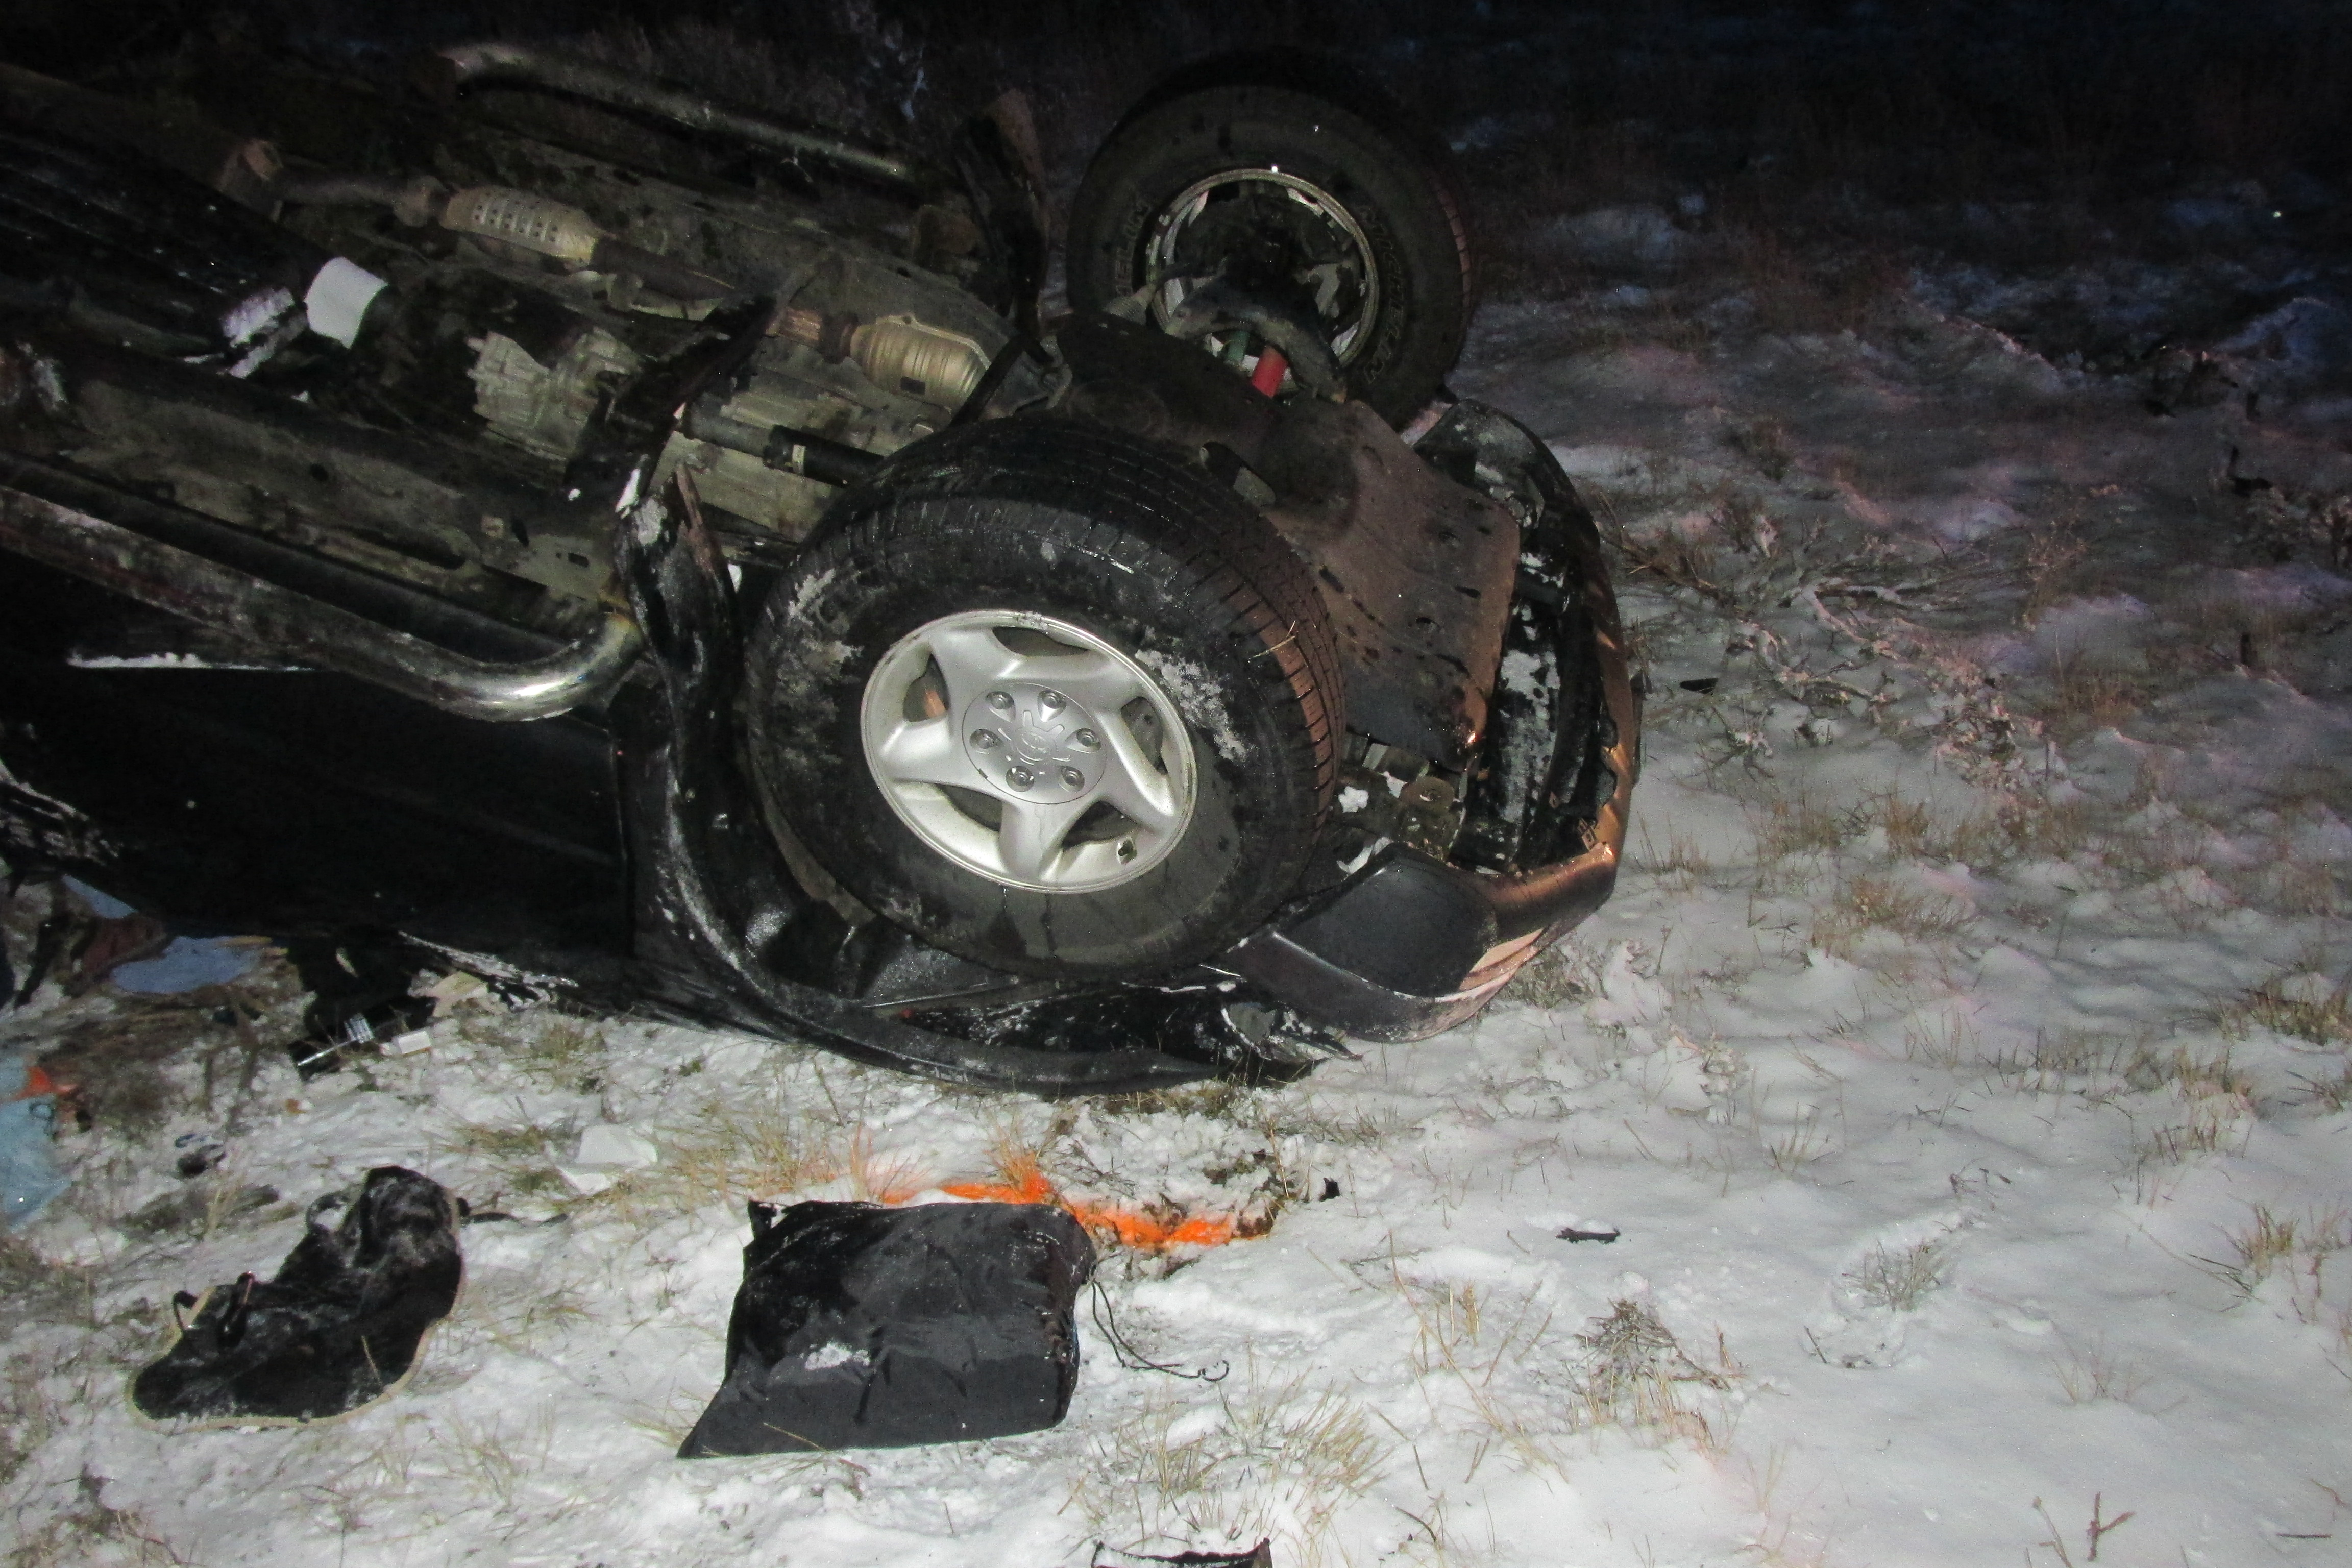 A man died and a woman was sent to the hospital after icy conditions led to a rollover accident at milepost 66 Interstate 15 in Cedar City, Utah, Nov. 17, 2015   Photo courtesy of the Utah Highway Patrol, St. George News